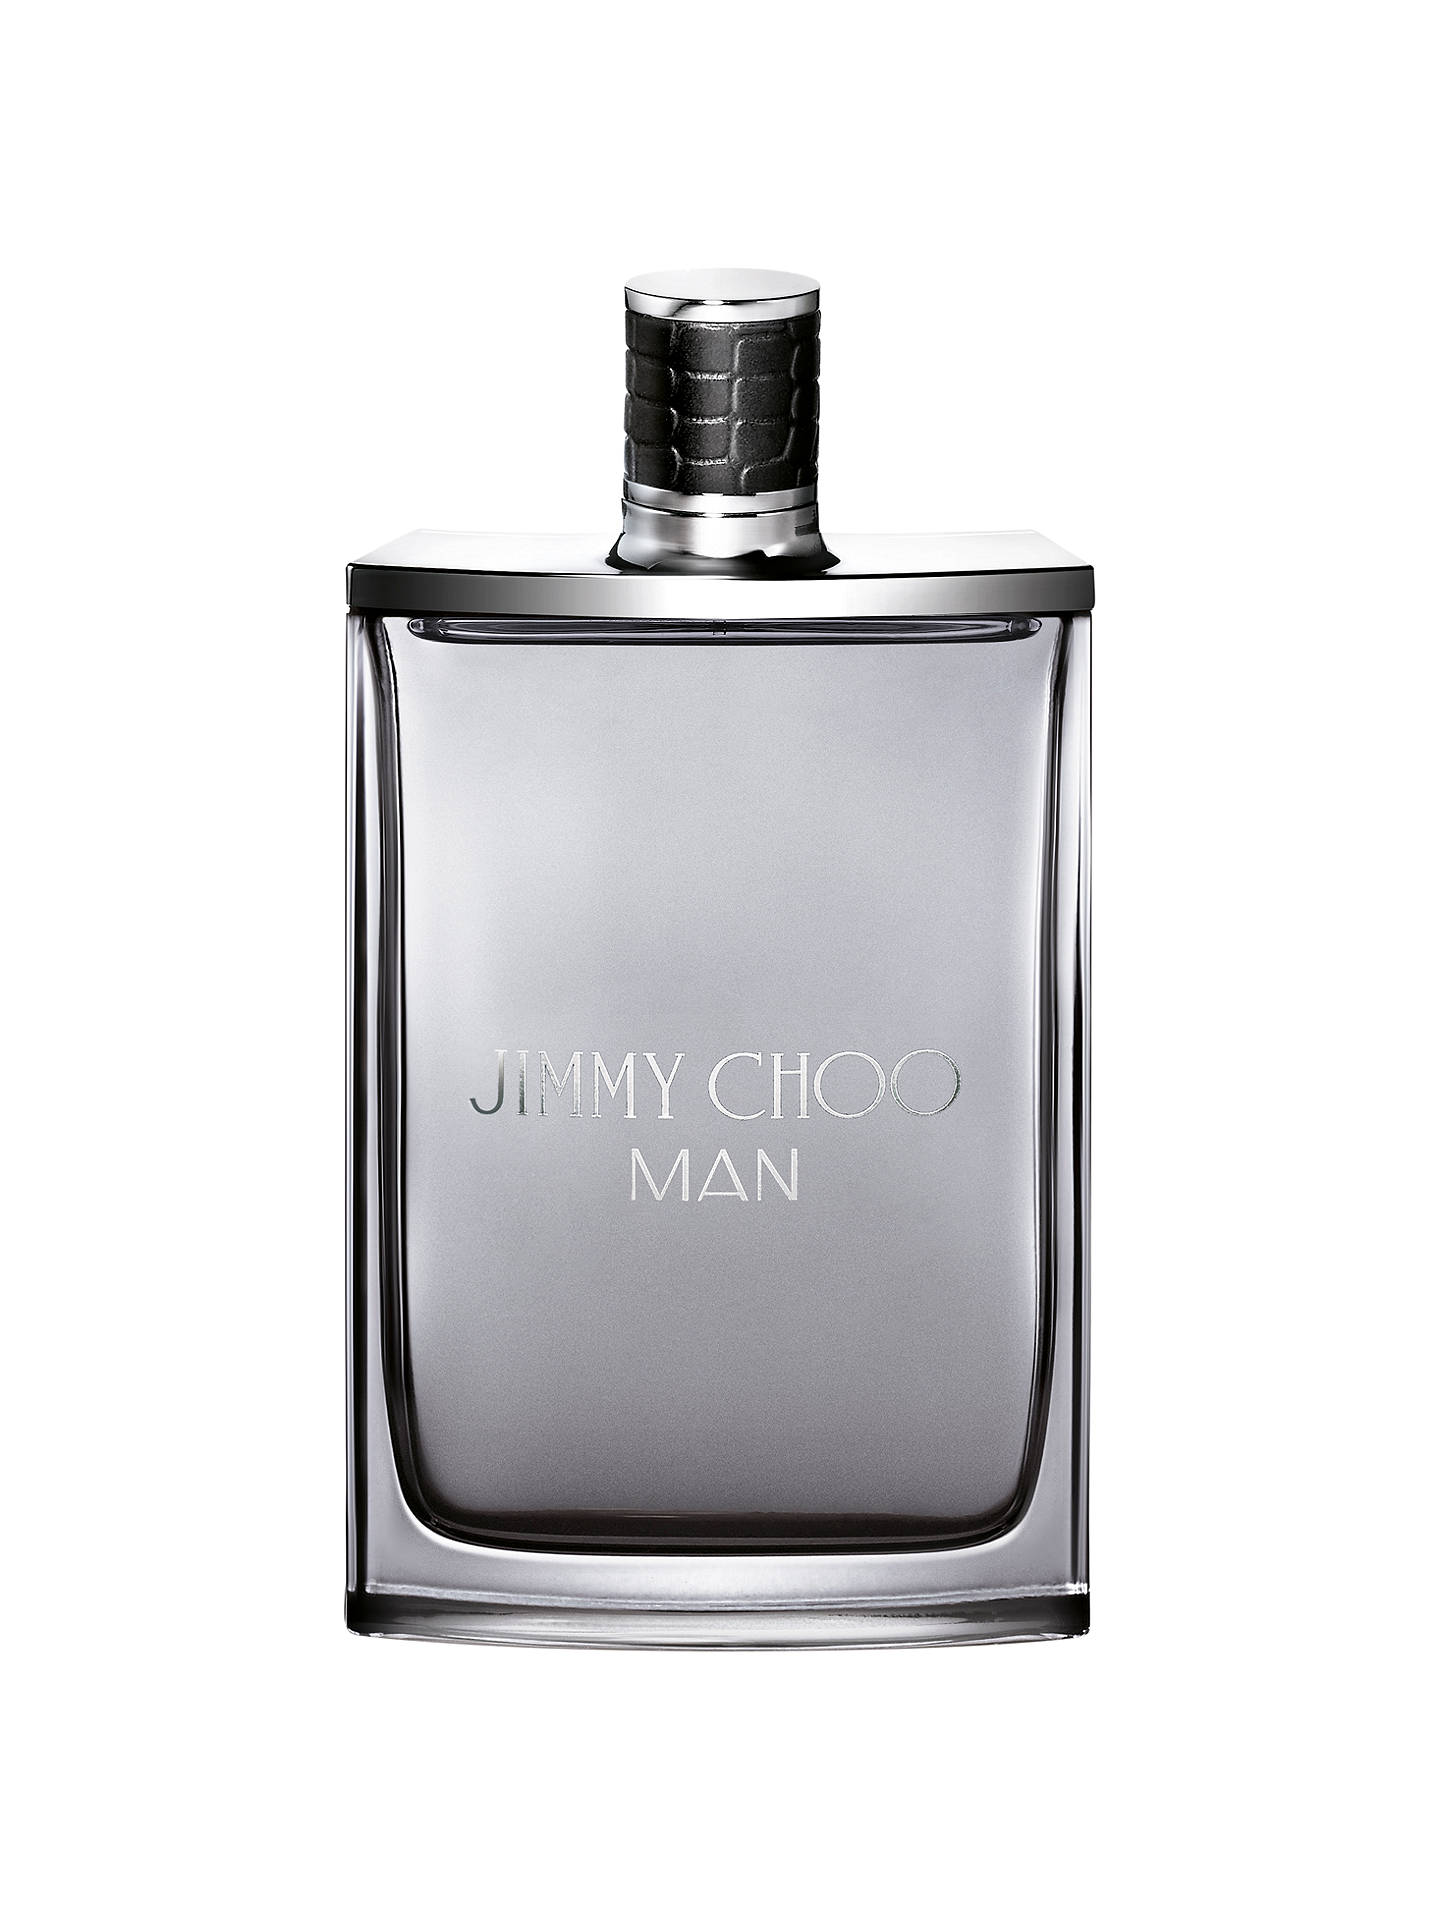 Buy Jimmy Choo MAN Eau de Toilette, 200ml Online at johnlewis.com